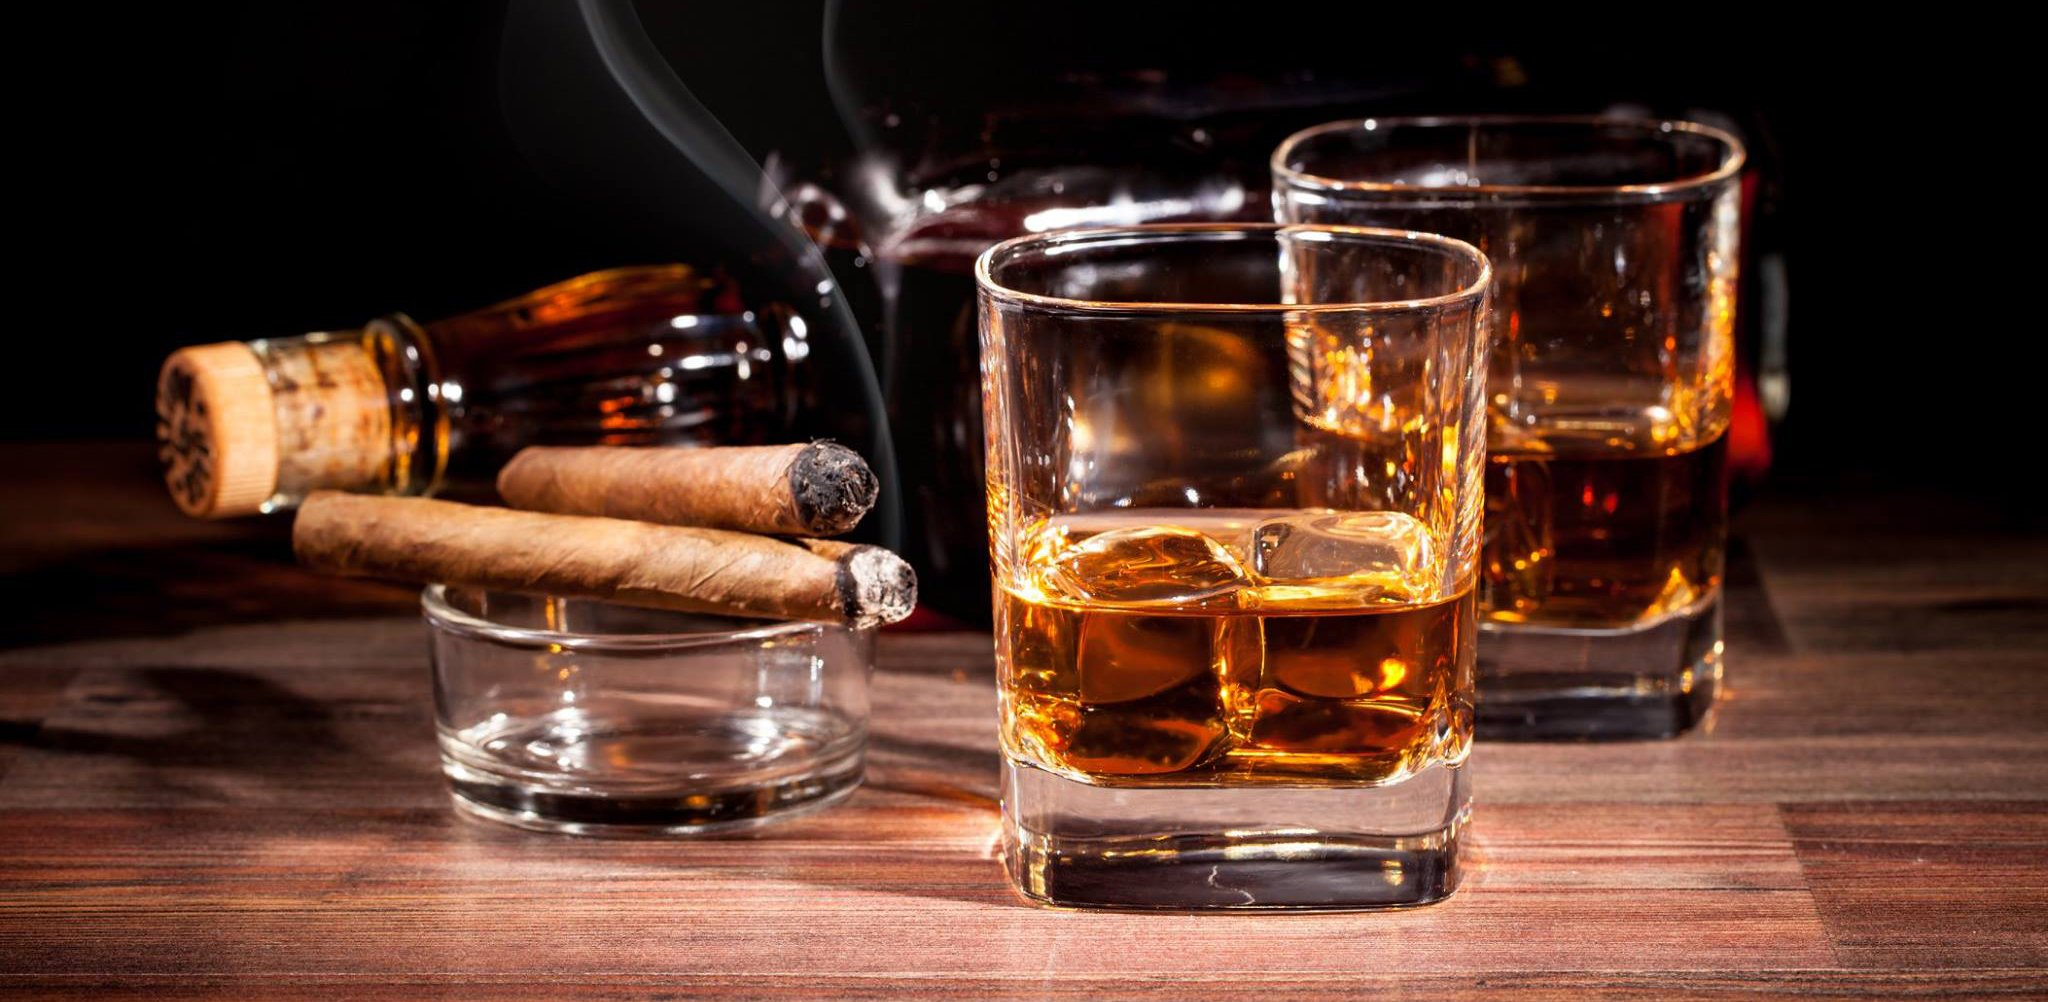 tobacco bokeh smoke smoking cigar drink alcohol drinks glass wallpaper 2048x1002